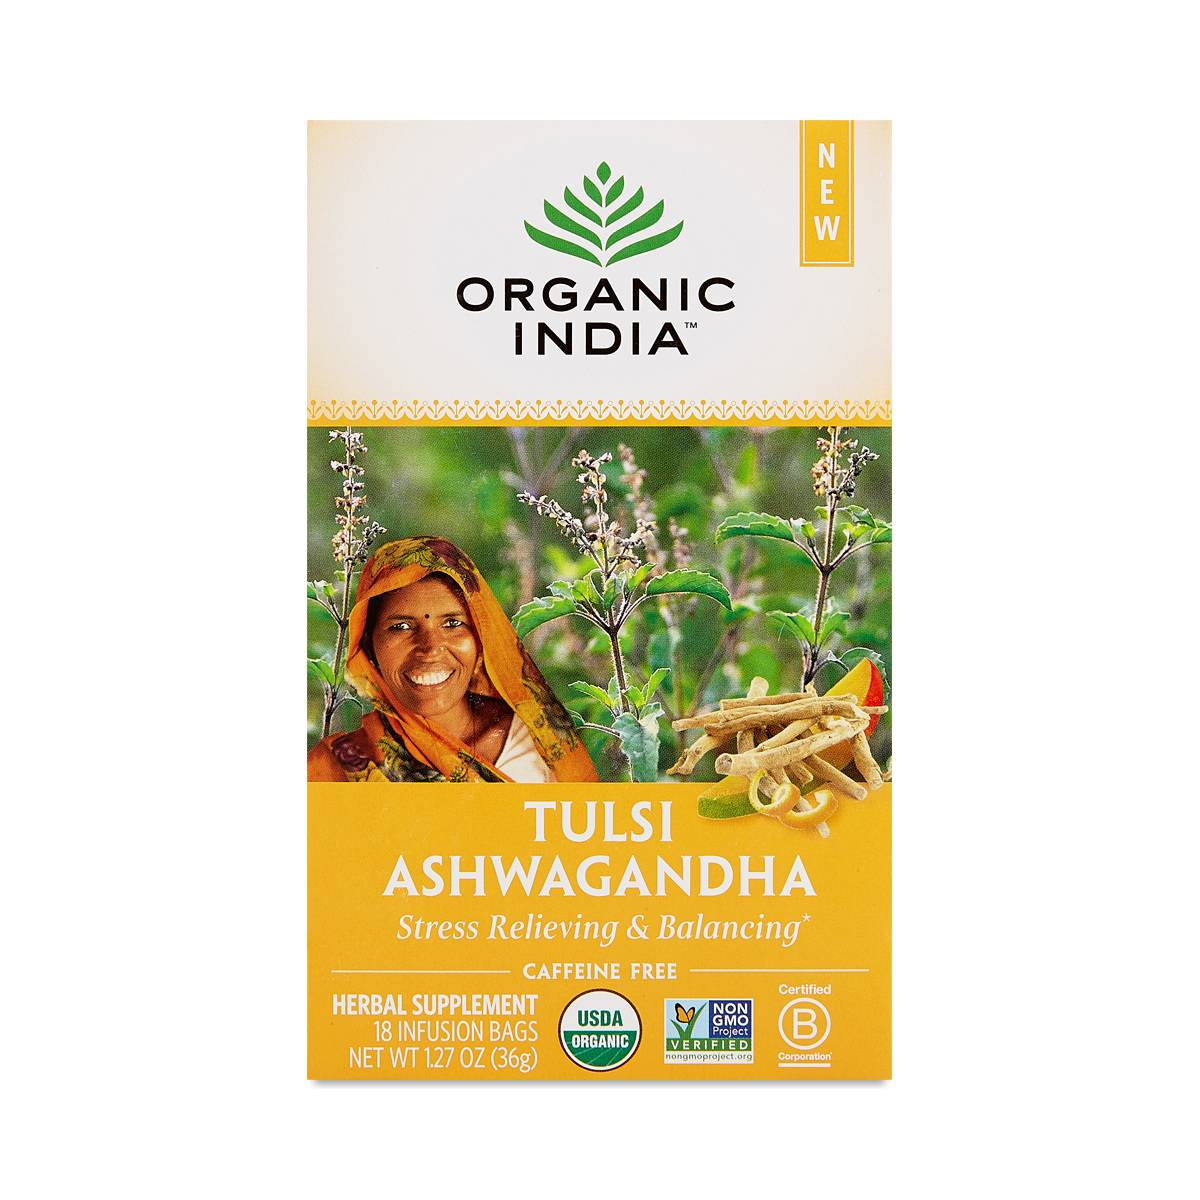 Organic India Tulsi Ashwagandha Tea - Thrive Market